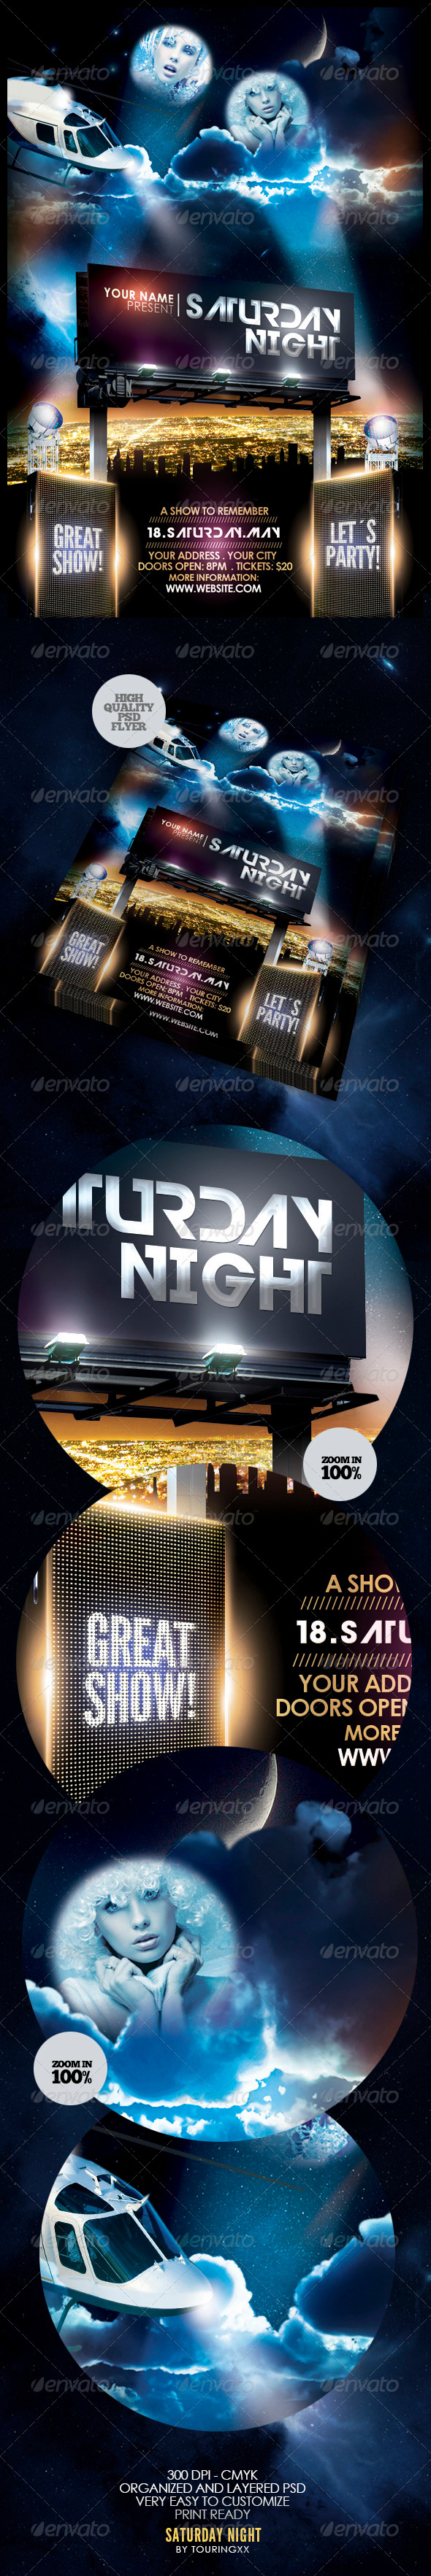 Saturday Night Flyer Template - Clubs & Parties Events